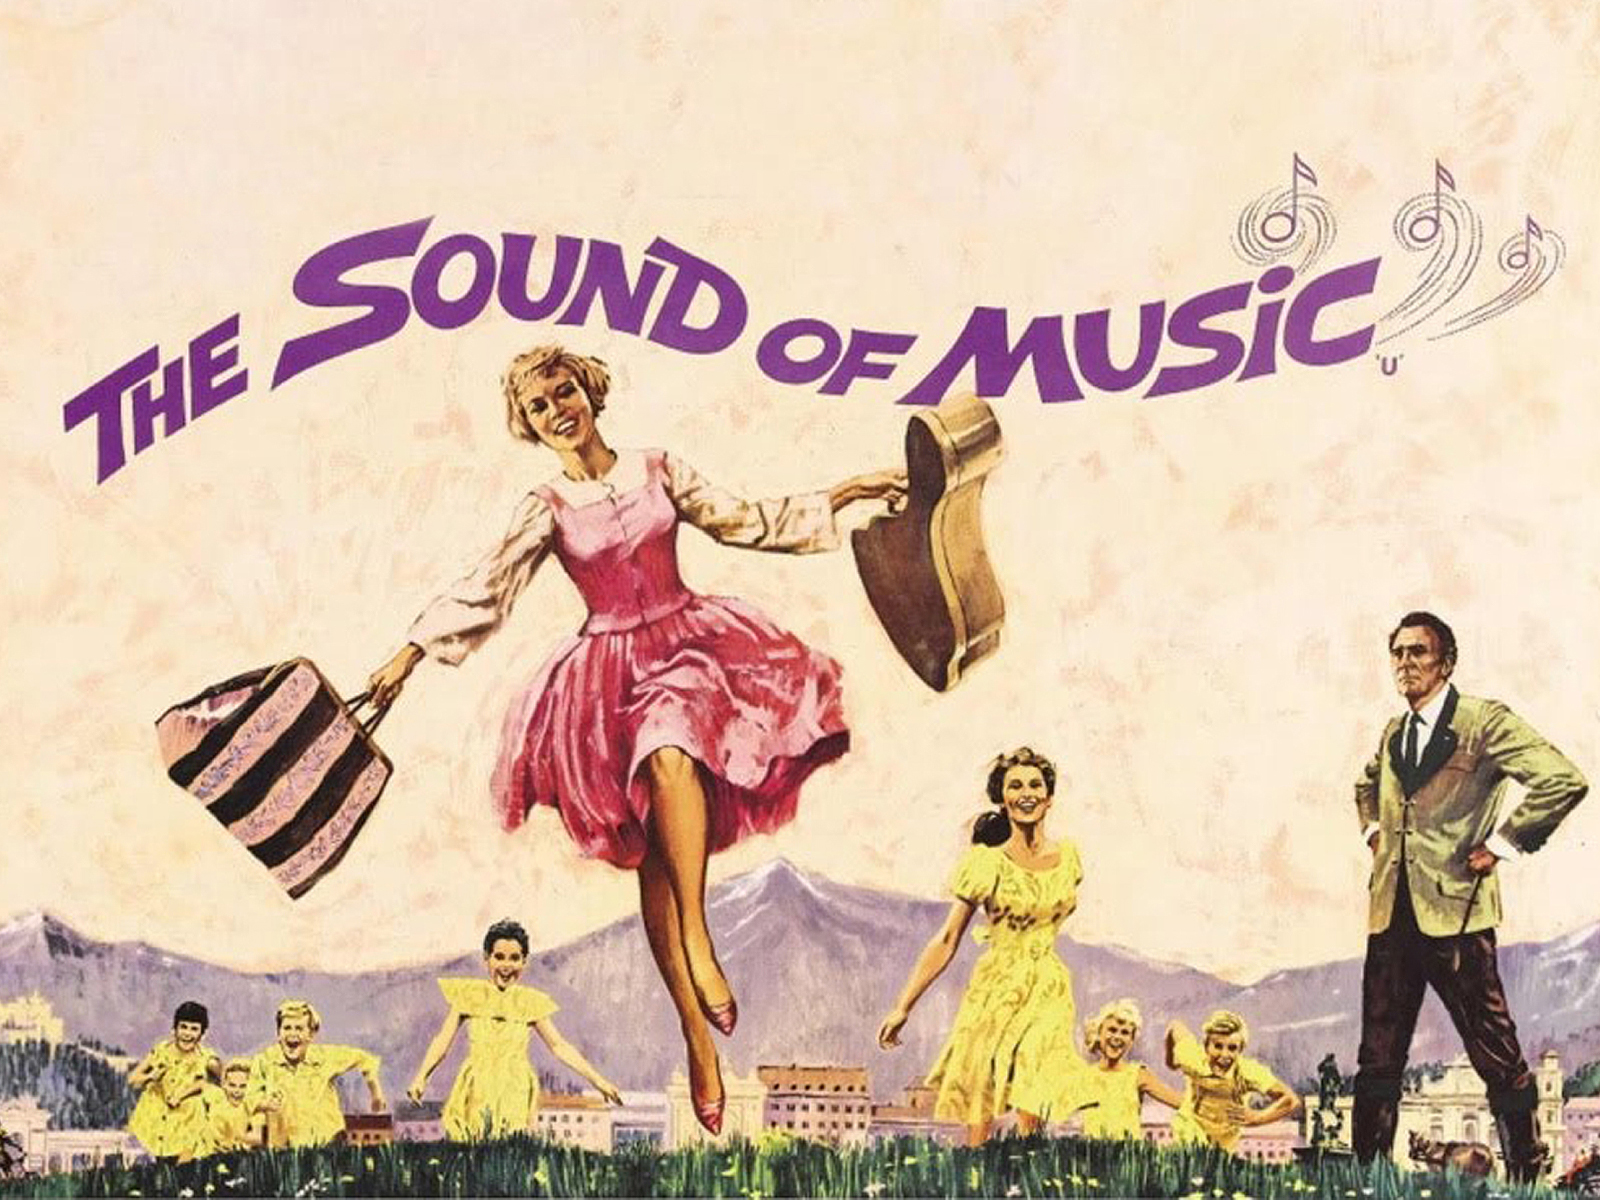 One of the most popular movie musicals of all time, The Sound of Music is based on the true story of the Trapp Family Singers.